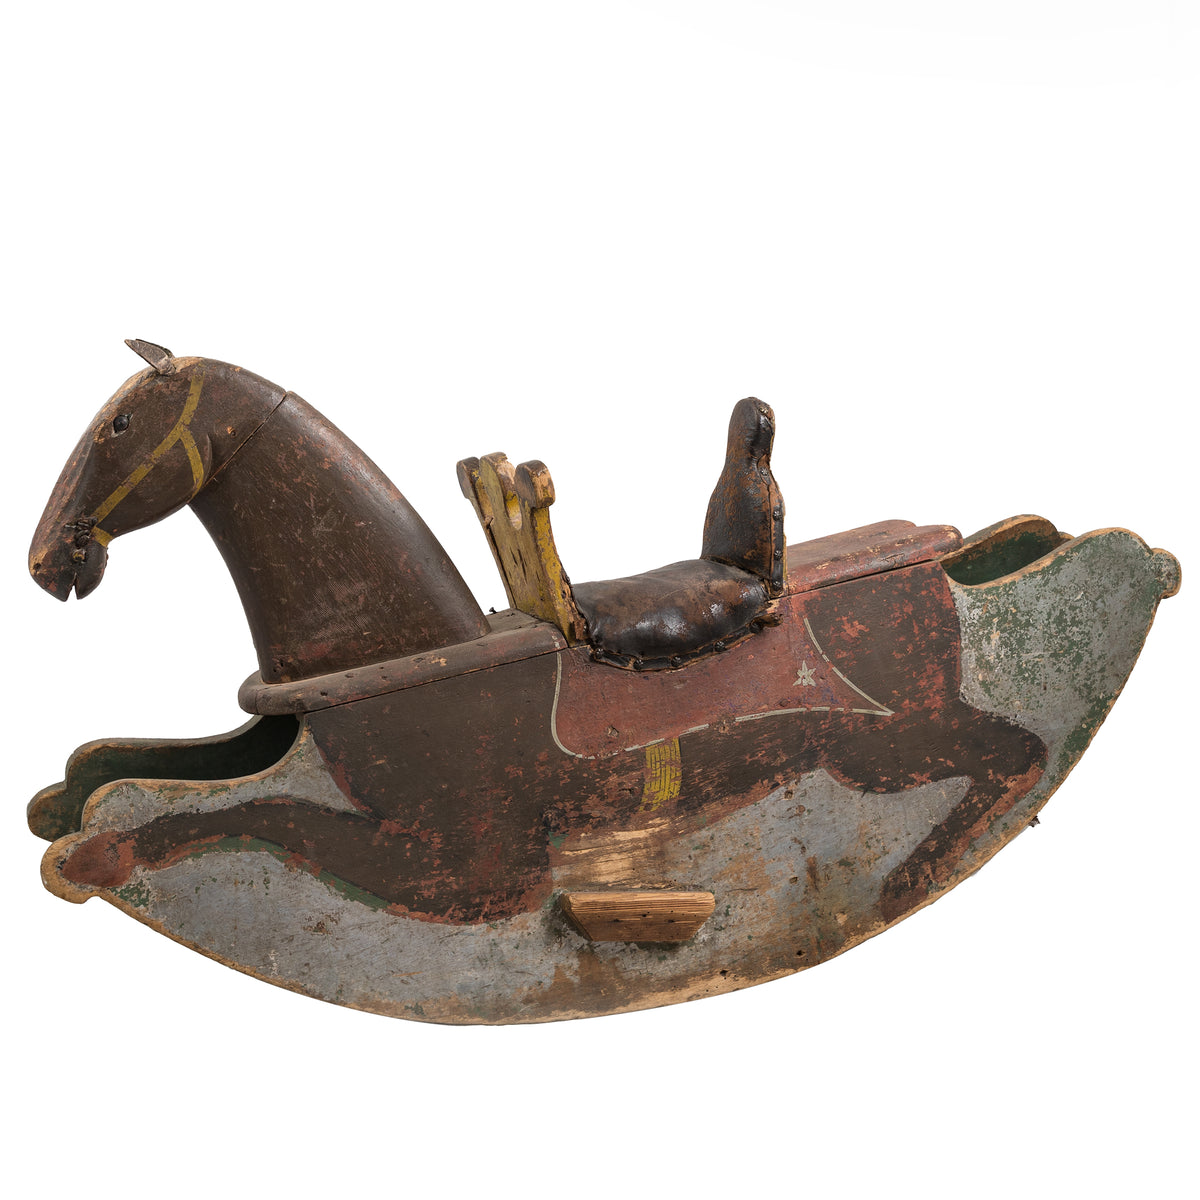 Antique Pine Children's Toy Rocking Horse | The Architectural Forum